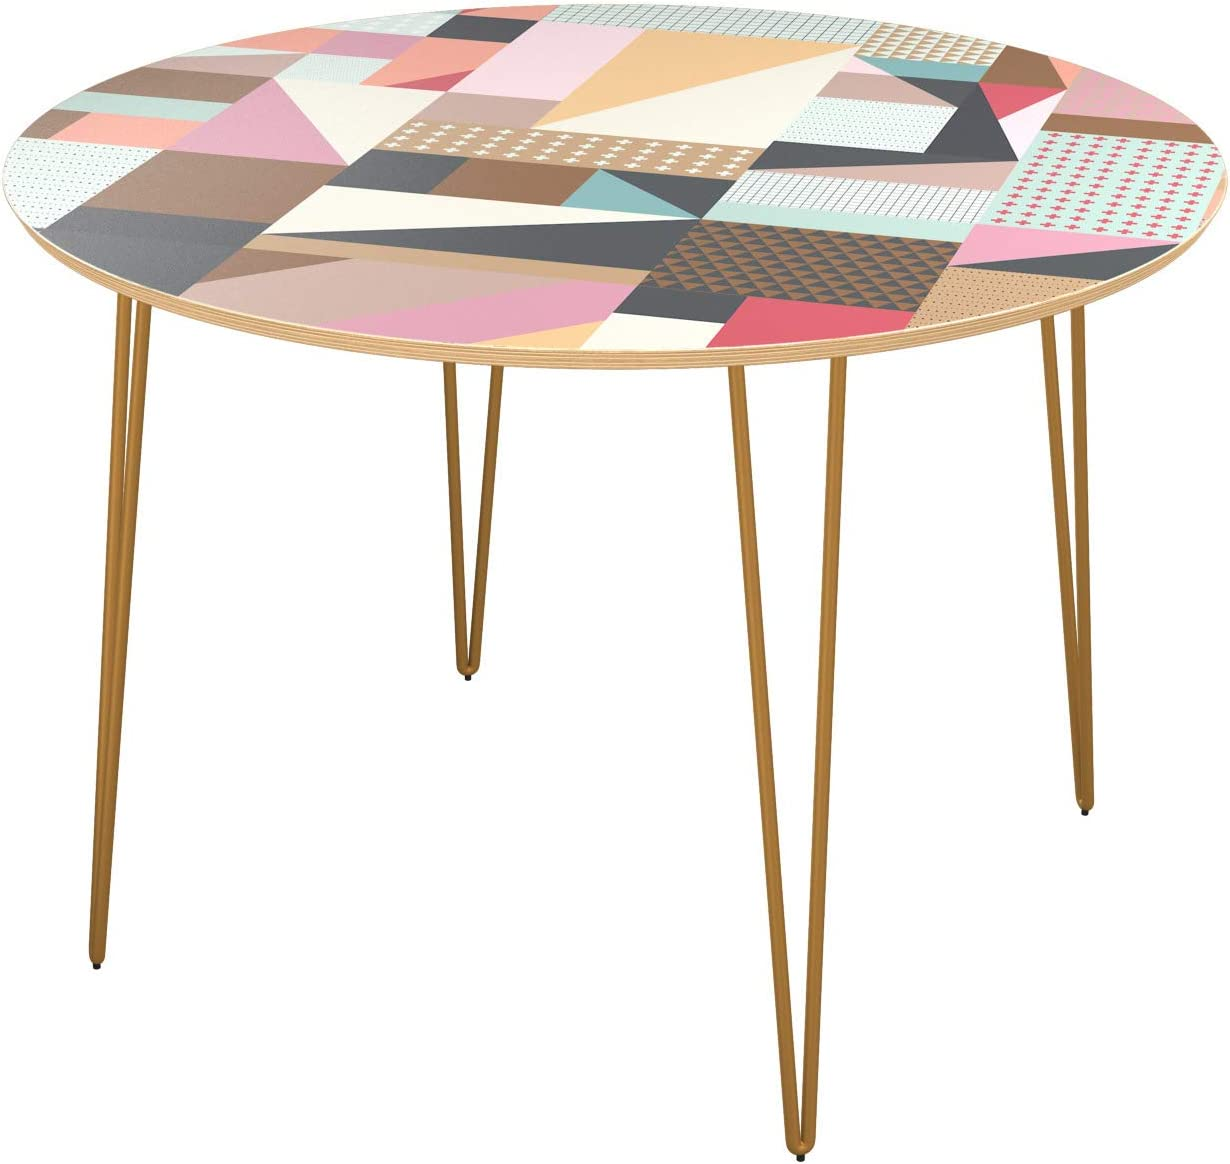 Poppy Round Dining Table - Modern Ranking TOP14 Max 81% OFF Brass Patchwork Hairpi Surface